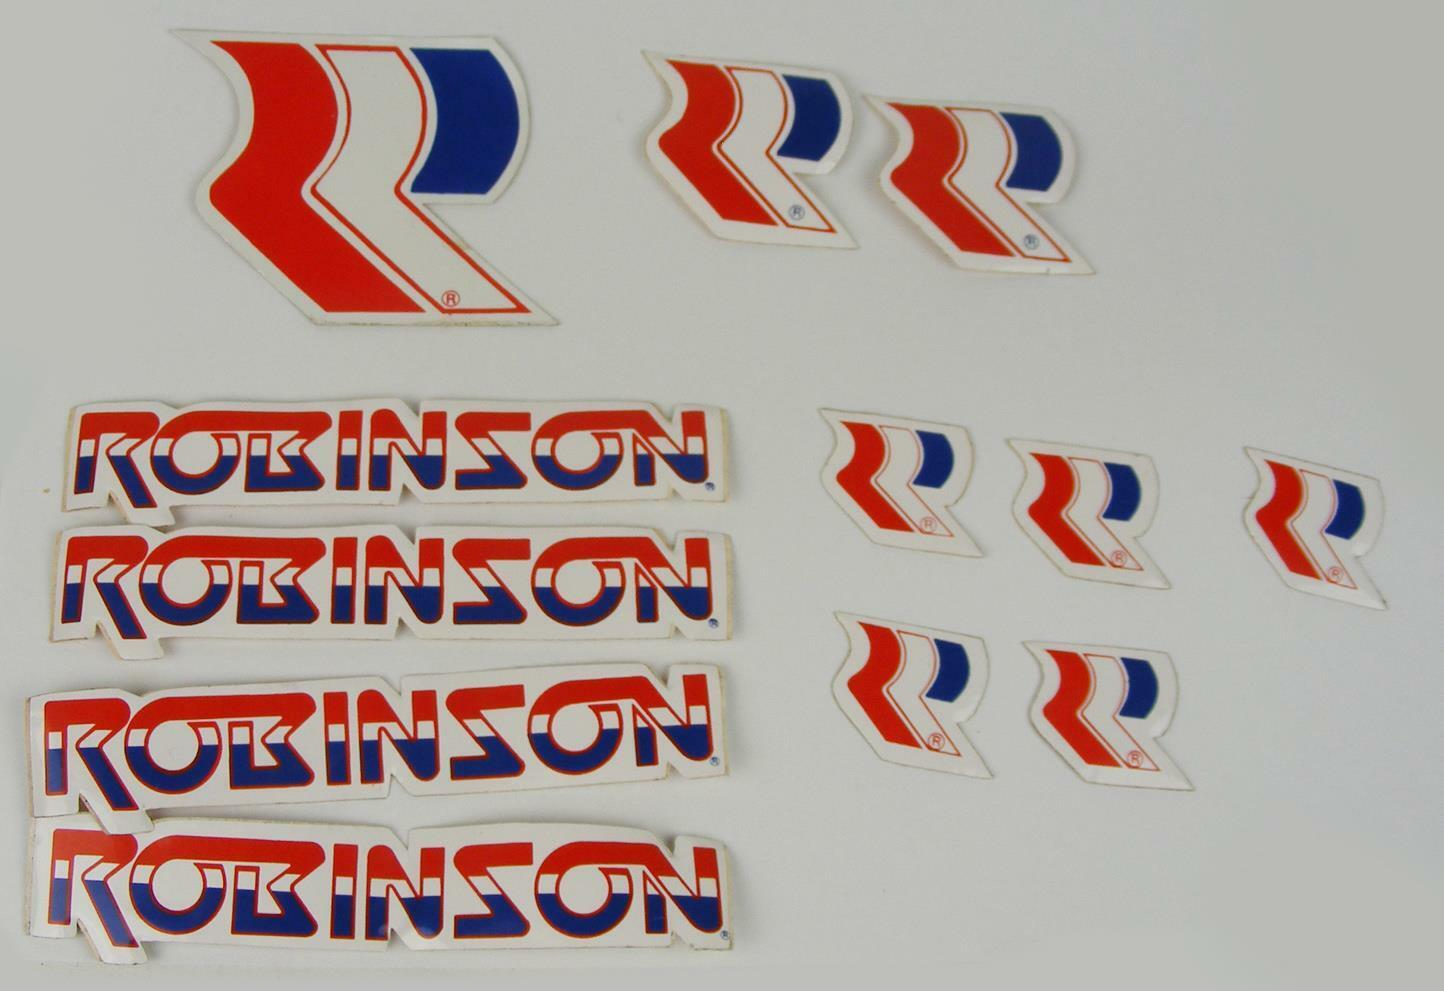 1990-95 Robinson decal set all models on chrome